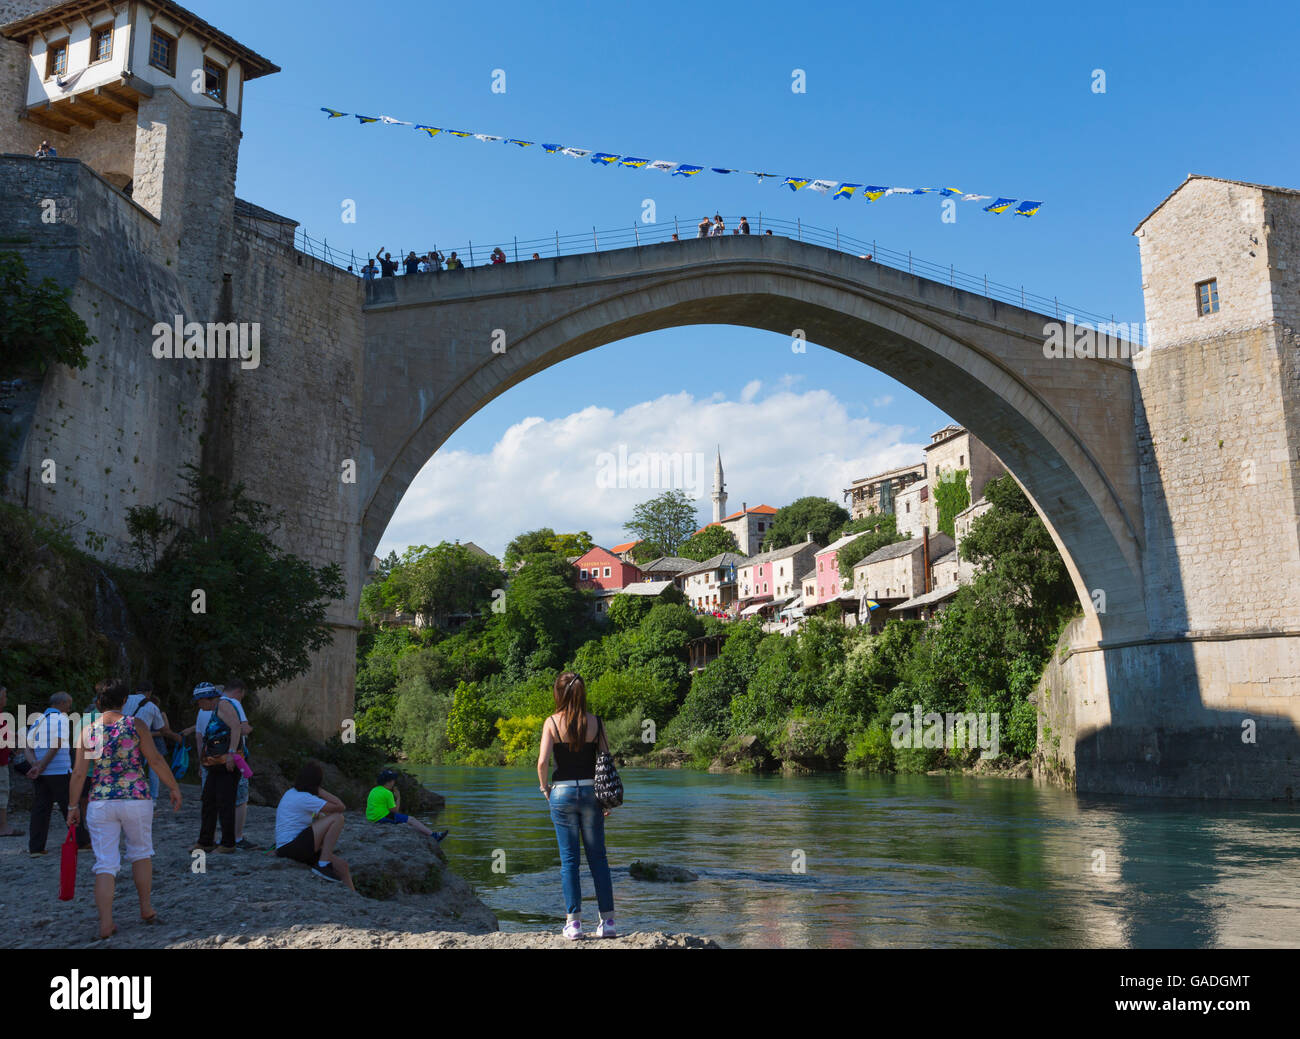 Mostar, Herzegovina-Neretva, Bosnia and Herzegovina.  The single-arch Stari Most, or Old Bridge, crossing the Neretva - Stock Image